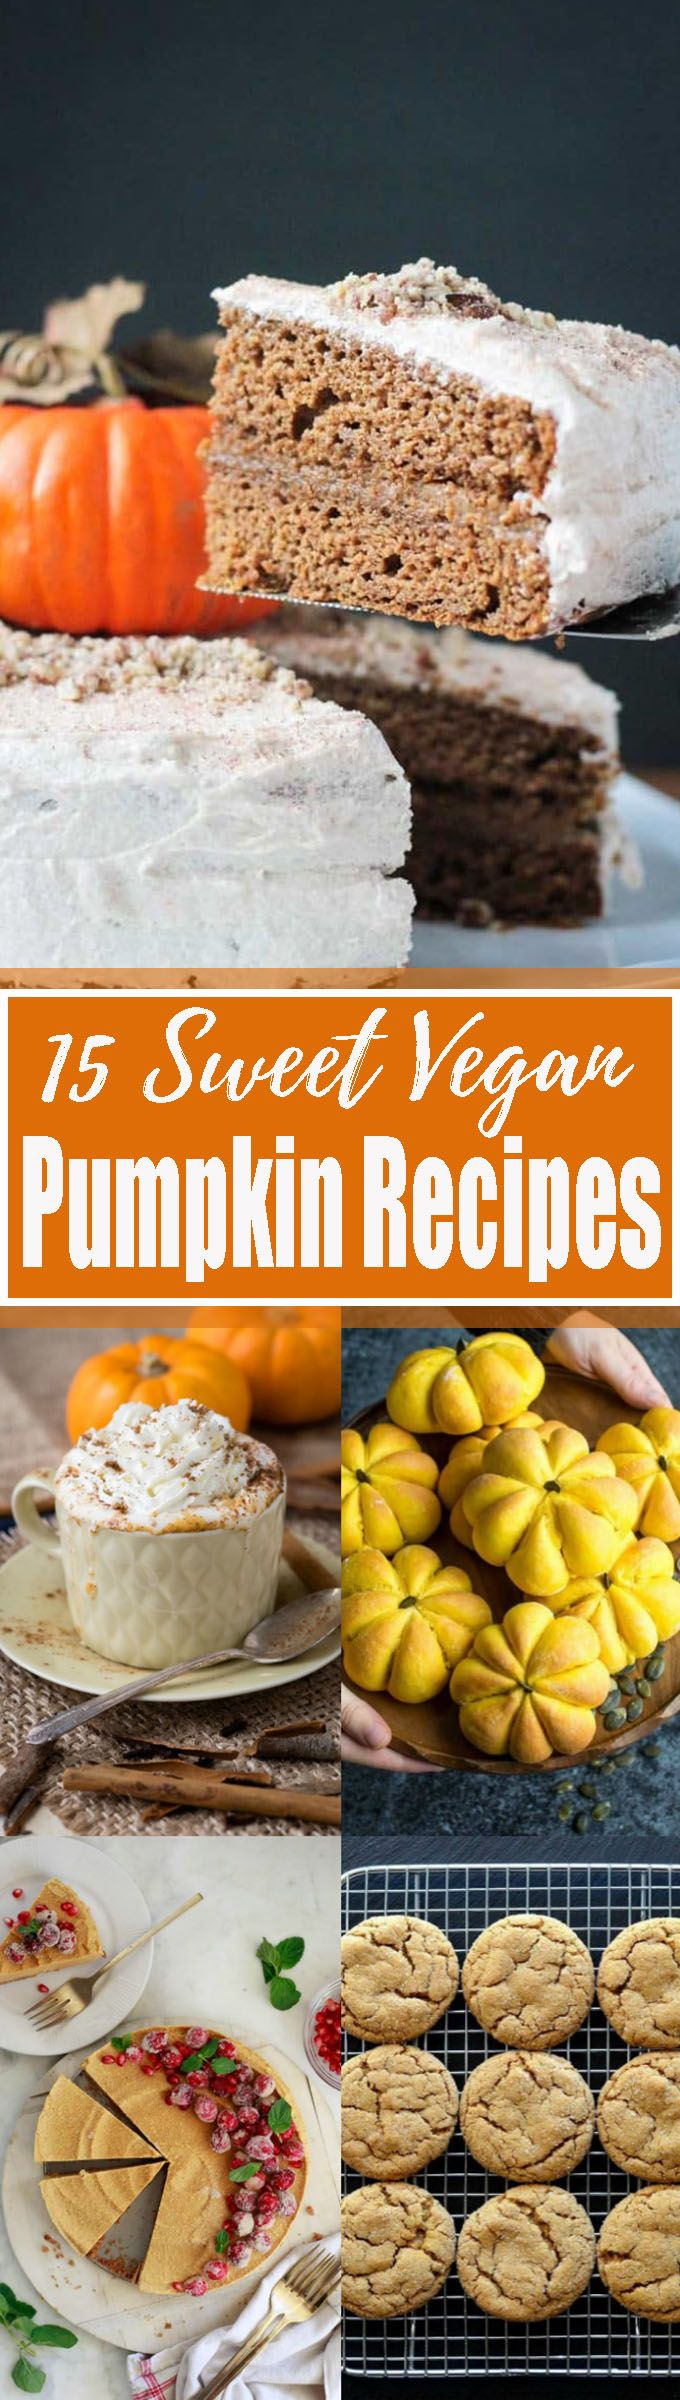 35 Stunning Vegan Pumpkin Recipes You Need To Try This Fall!! Yaay! Pumpkin season is finally here! I'm a real pumpkin addict, so I just had to put together a massive roundup of delicious vegan pumpkin dessert recipes. <3   veganheaven.org